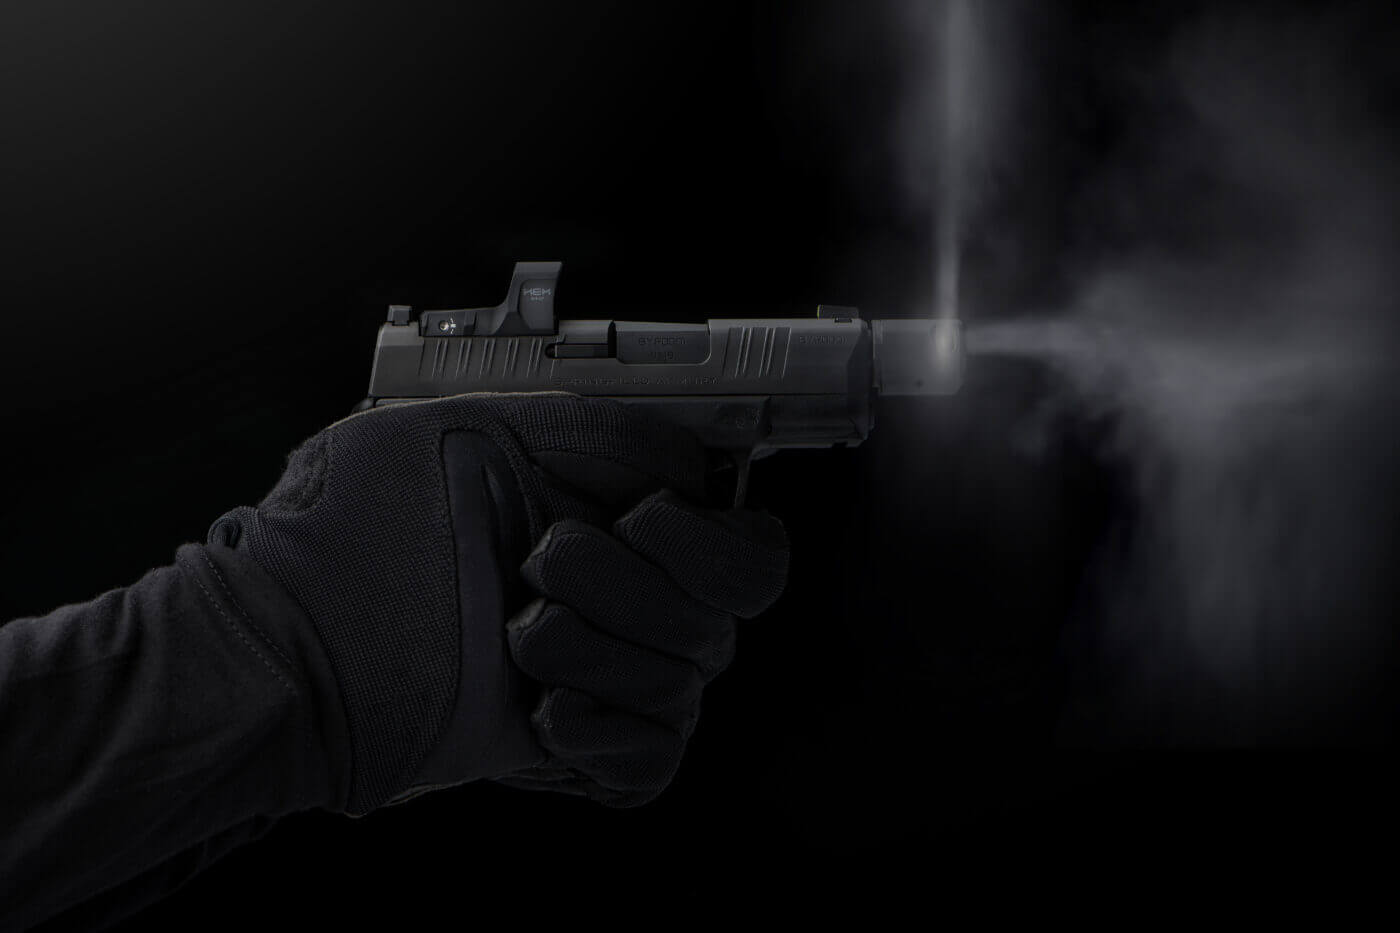 Springfield Armory Hellcat RDP compensator slow motion demonstration